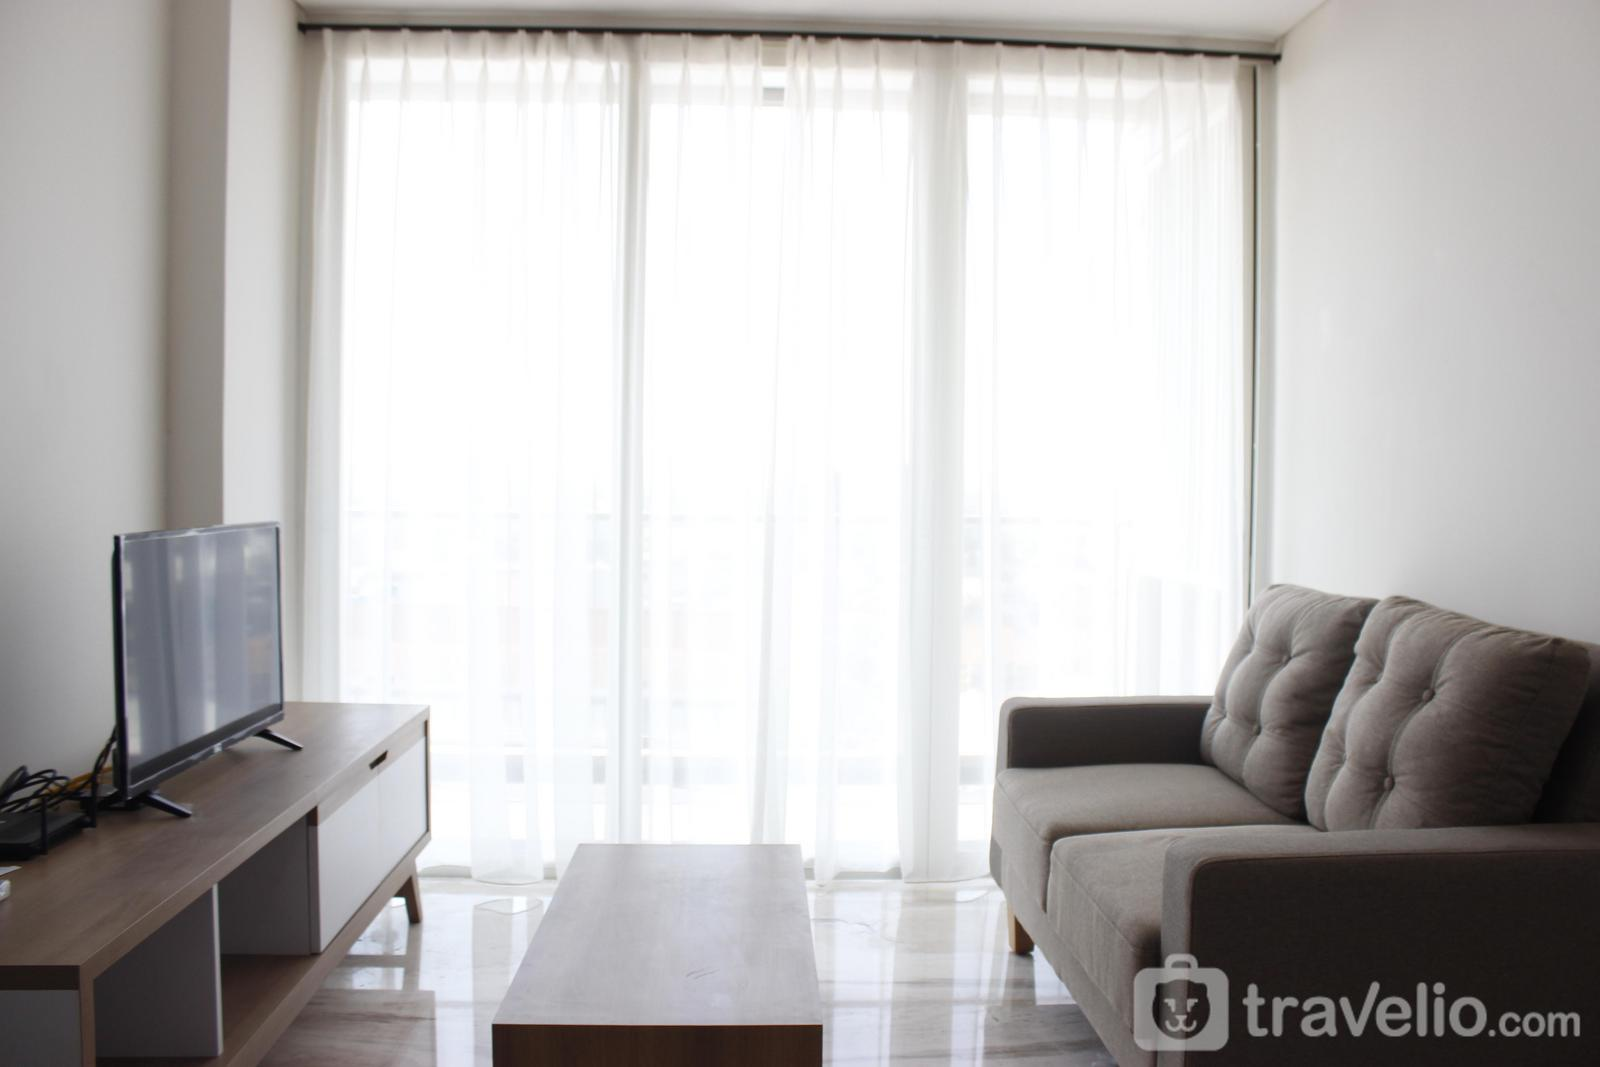 Landmark Residence Bandung - Artistic 3BR Apartment at Landmark Residence By Travelio